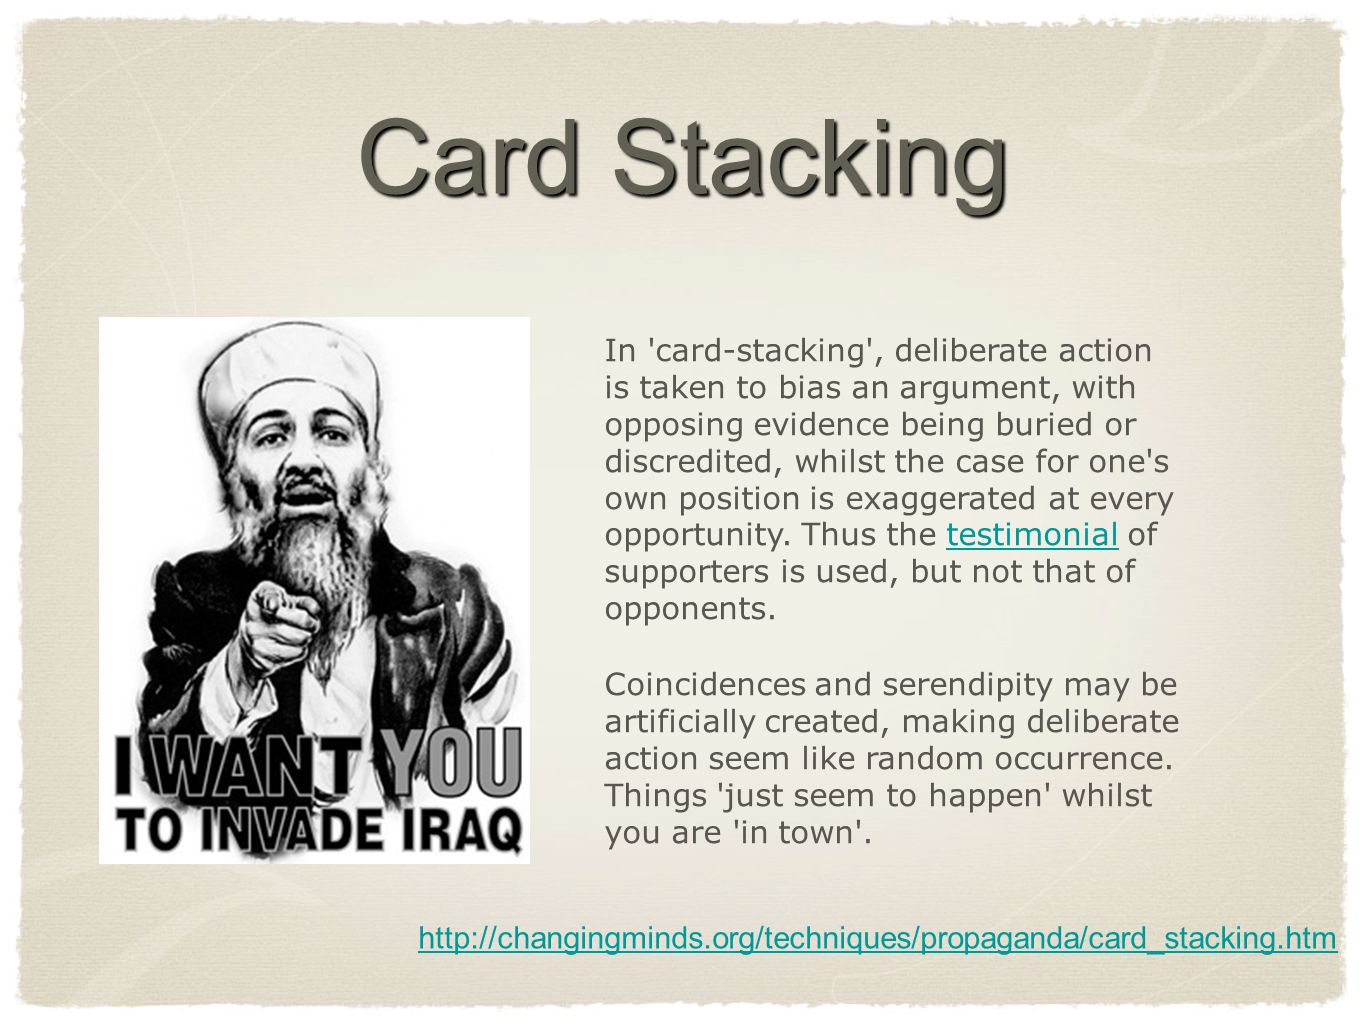 Card Stacking In 'card-stacking', deliberate action is taken to bias an argument, with opposing evidence being buried or discredited, whilst the case